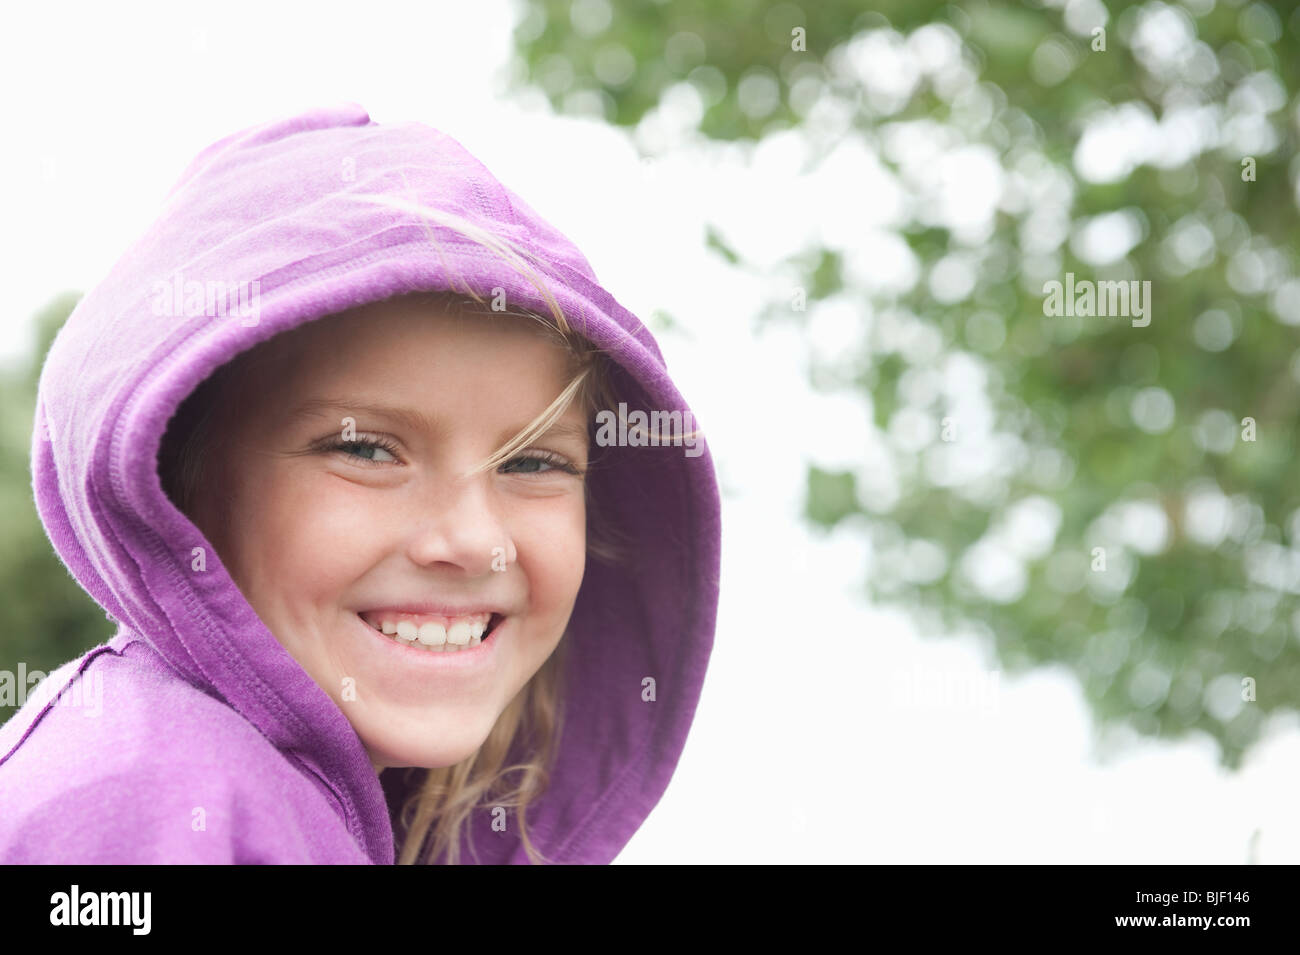 Portrait of a girl in a purple hooded top - Stock Image